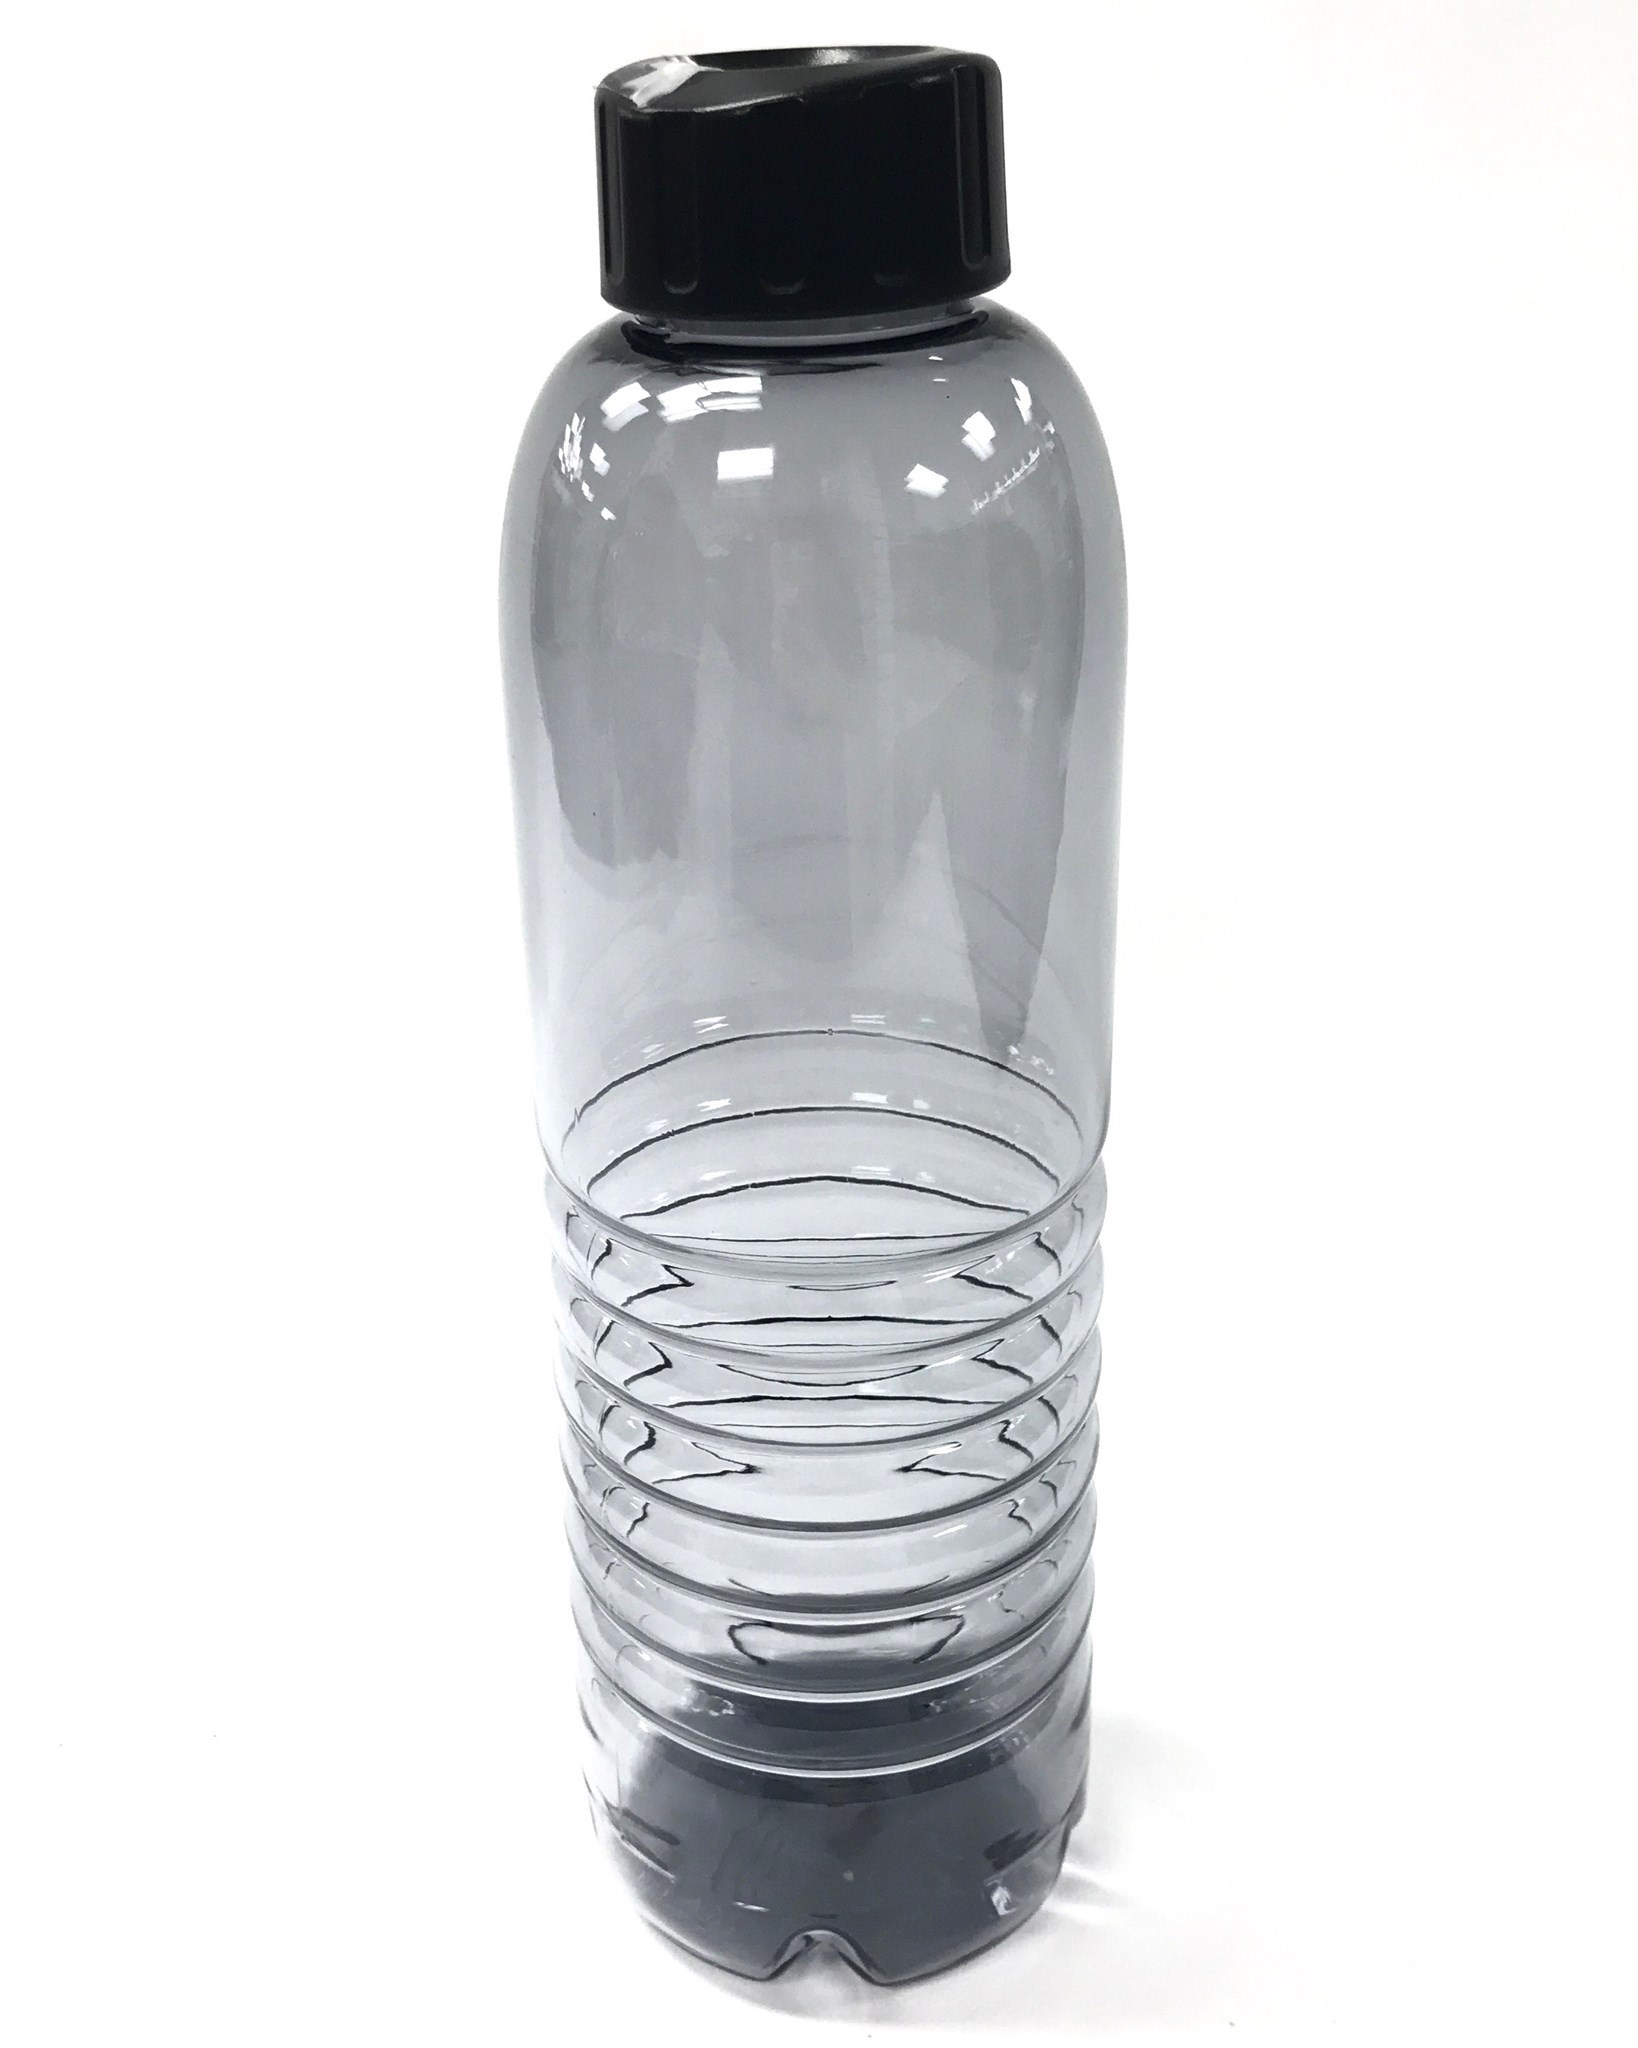 (0019421) Splash Bottle 30 Oz - Smoke/Black